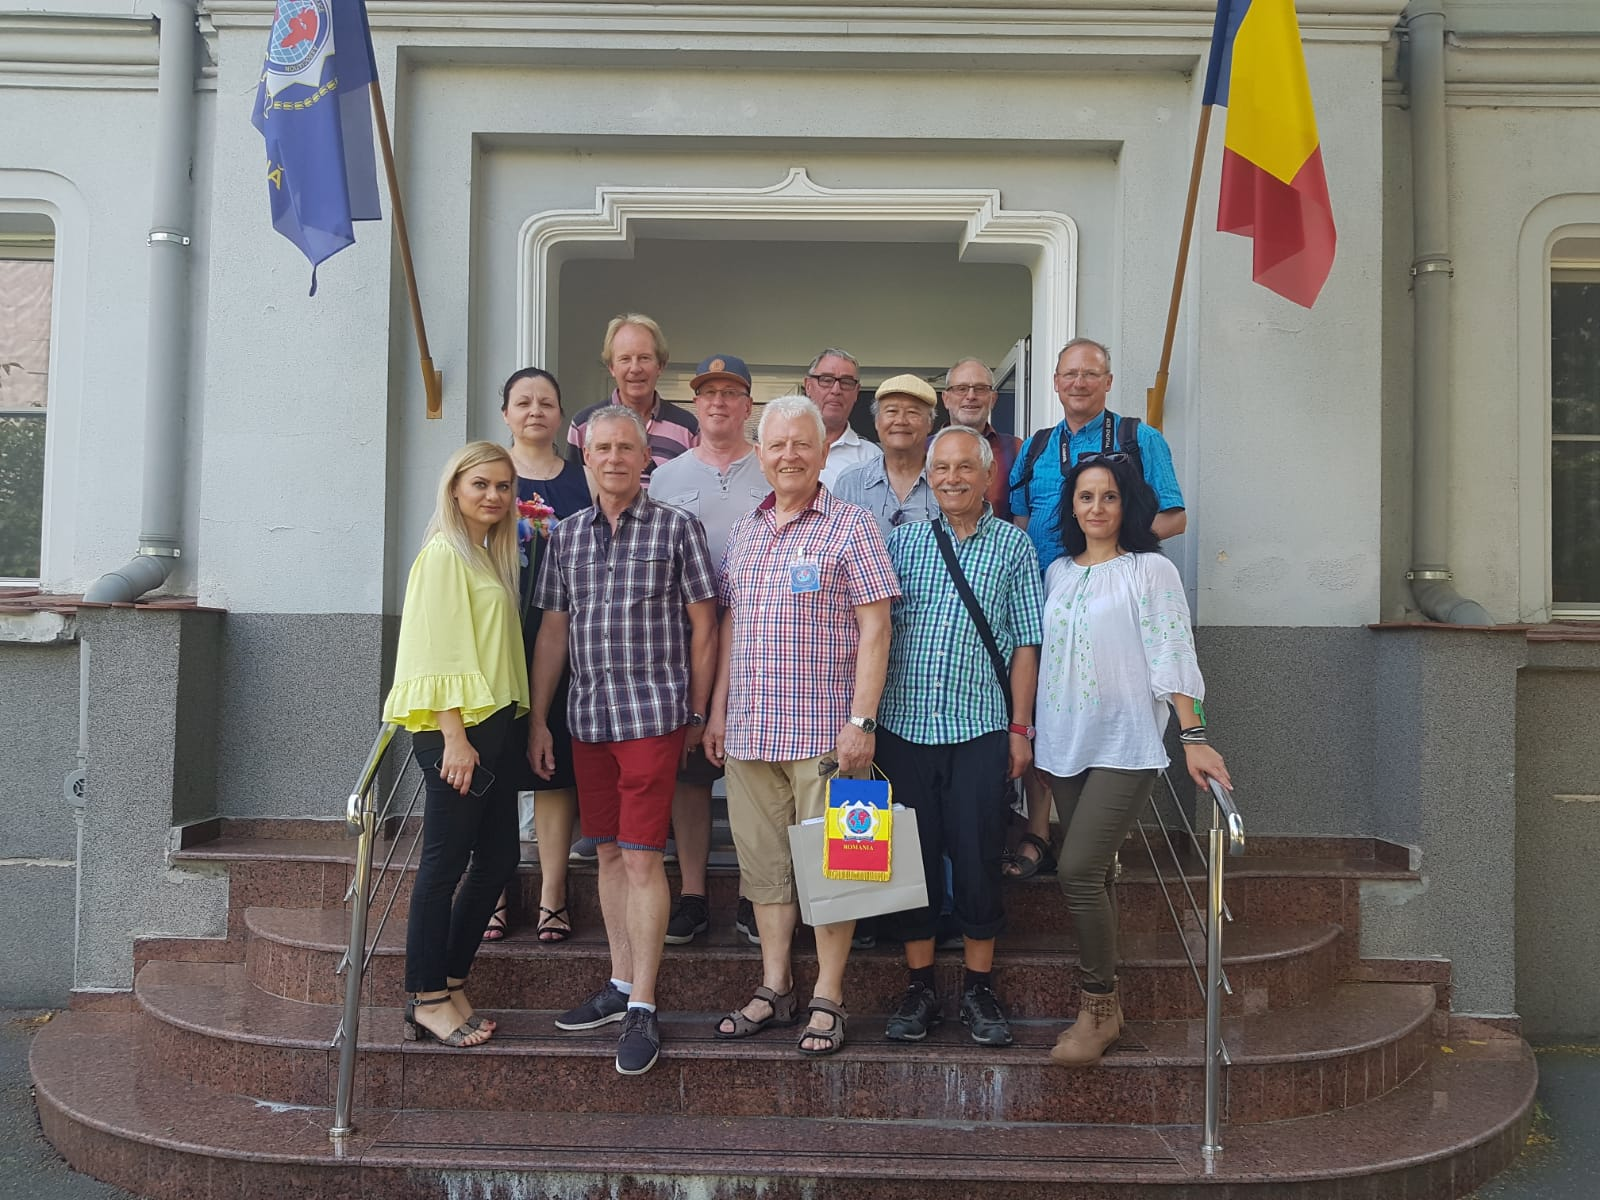 IPA Romania delighted to welcome visitors from IPA Germany's Fulda branch